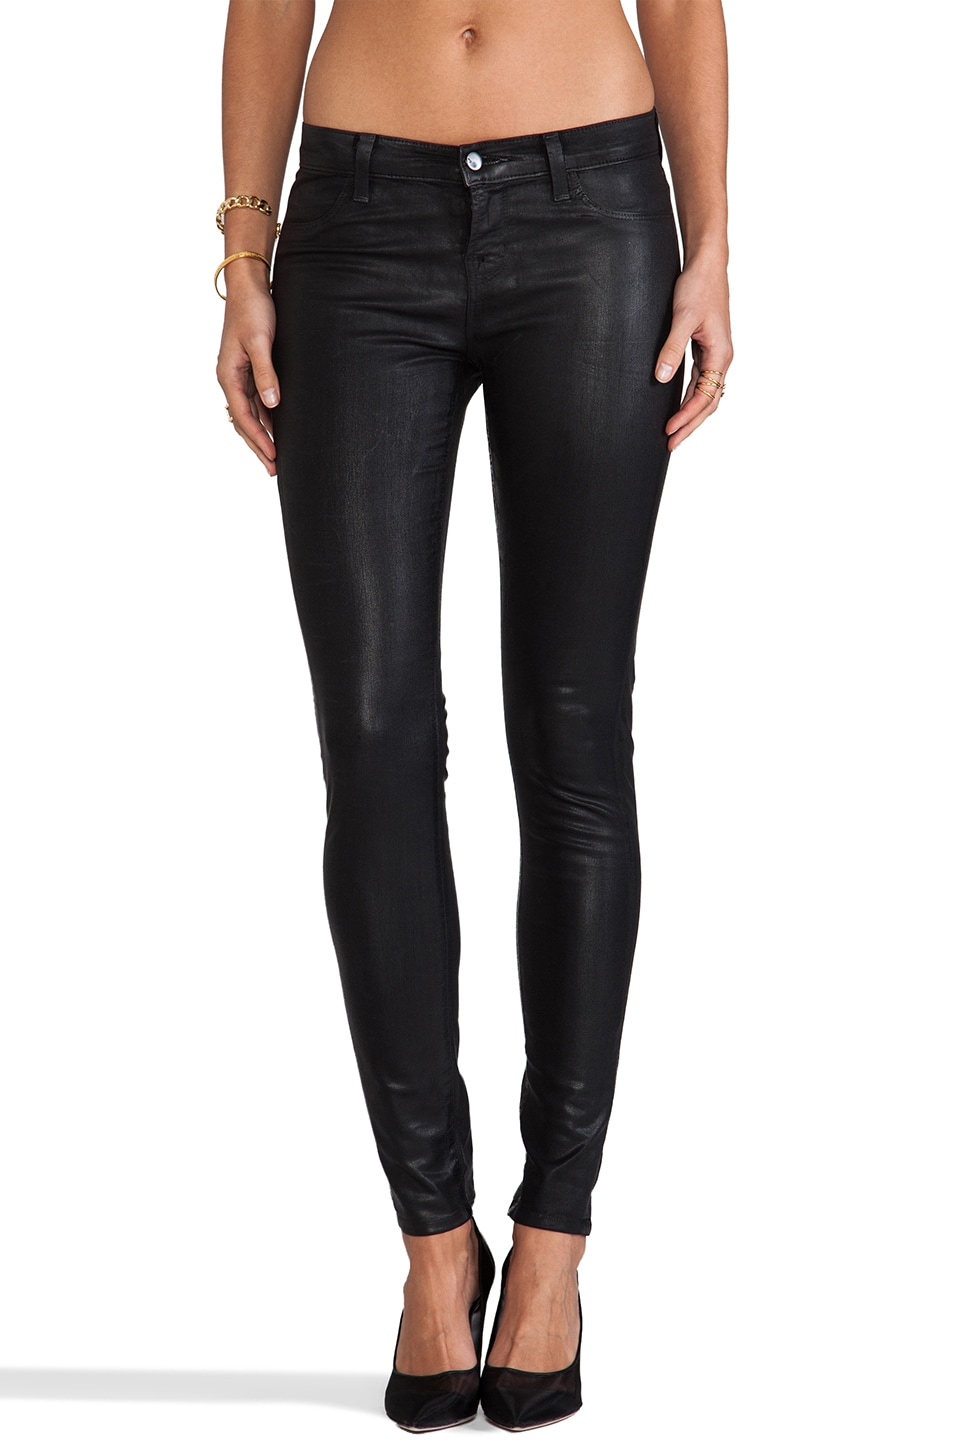 J Brand Midrise Legging in Coated Black